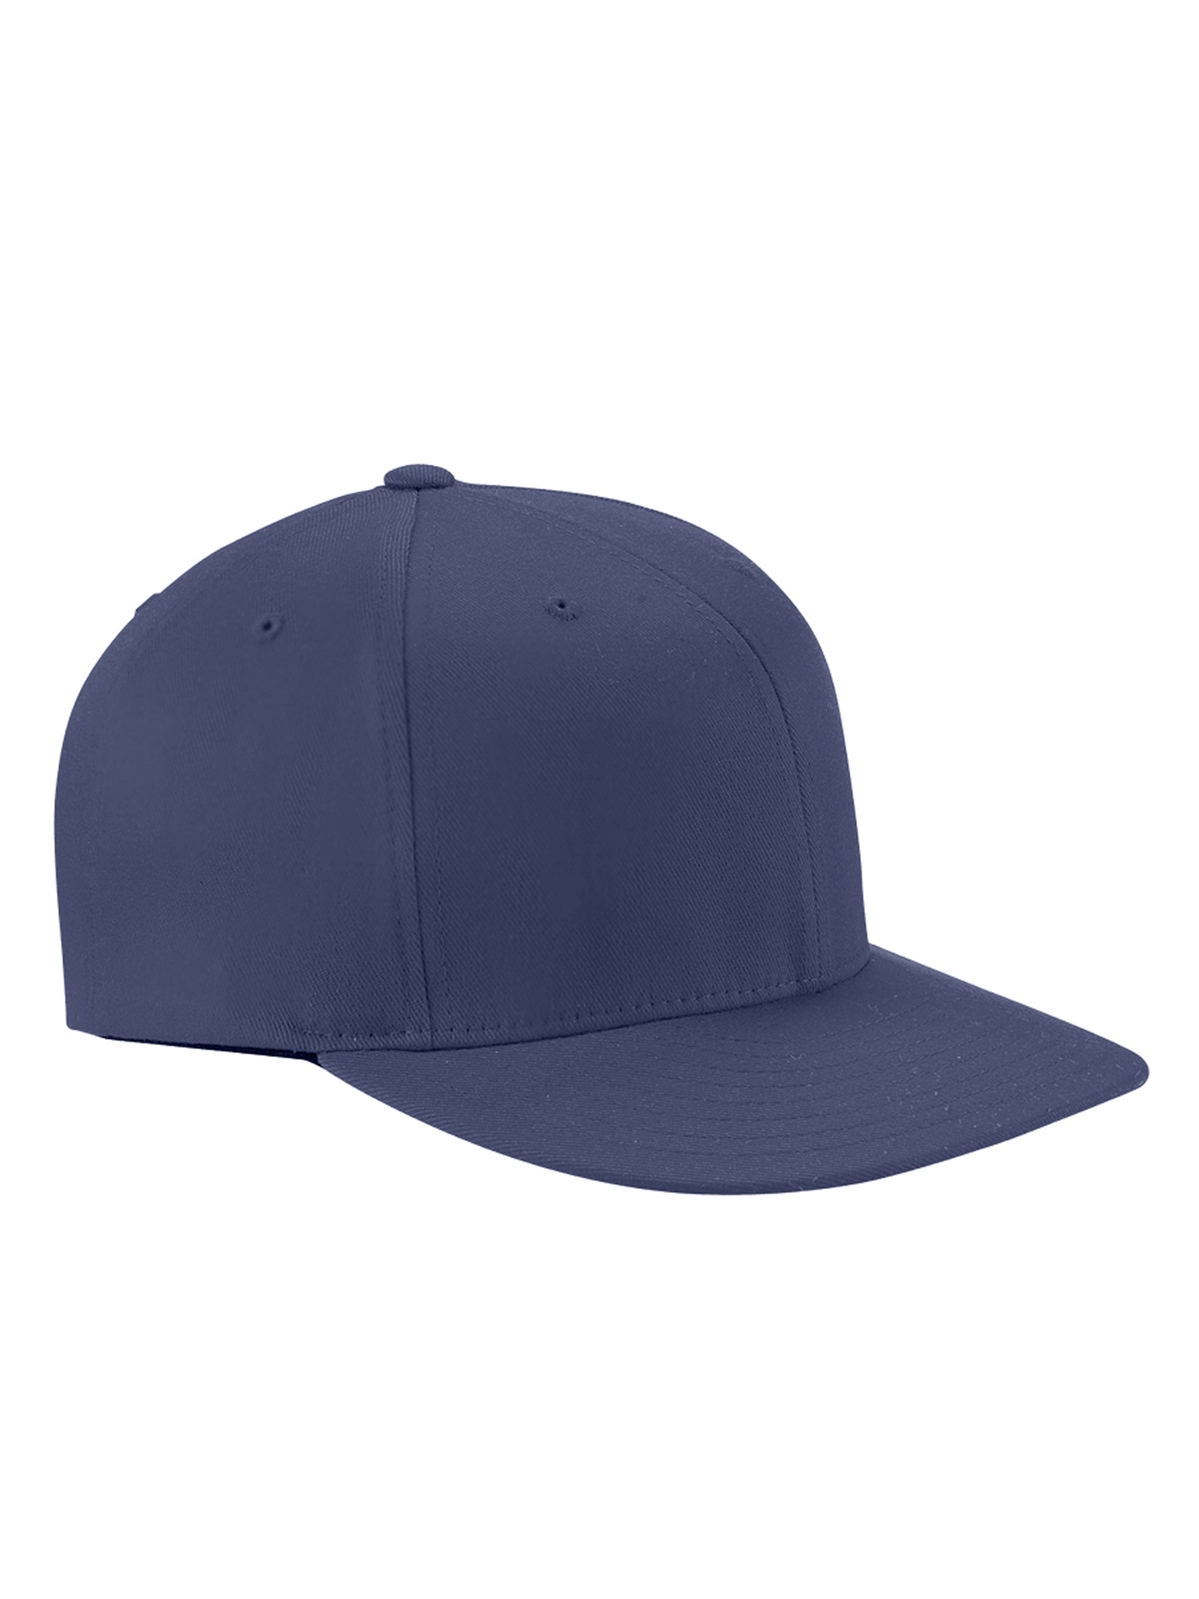 9c8c016b838 Flexfit 6297F - Pro-Baseball On Field Cap